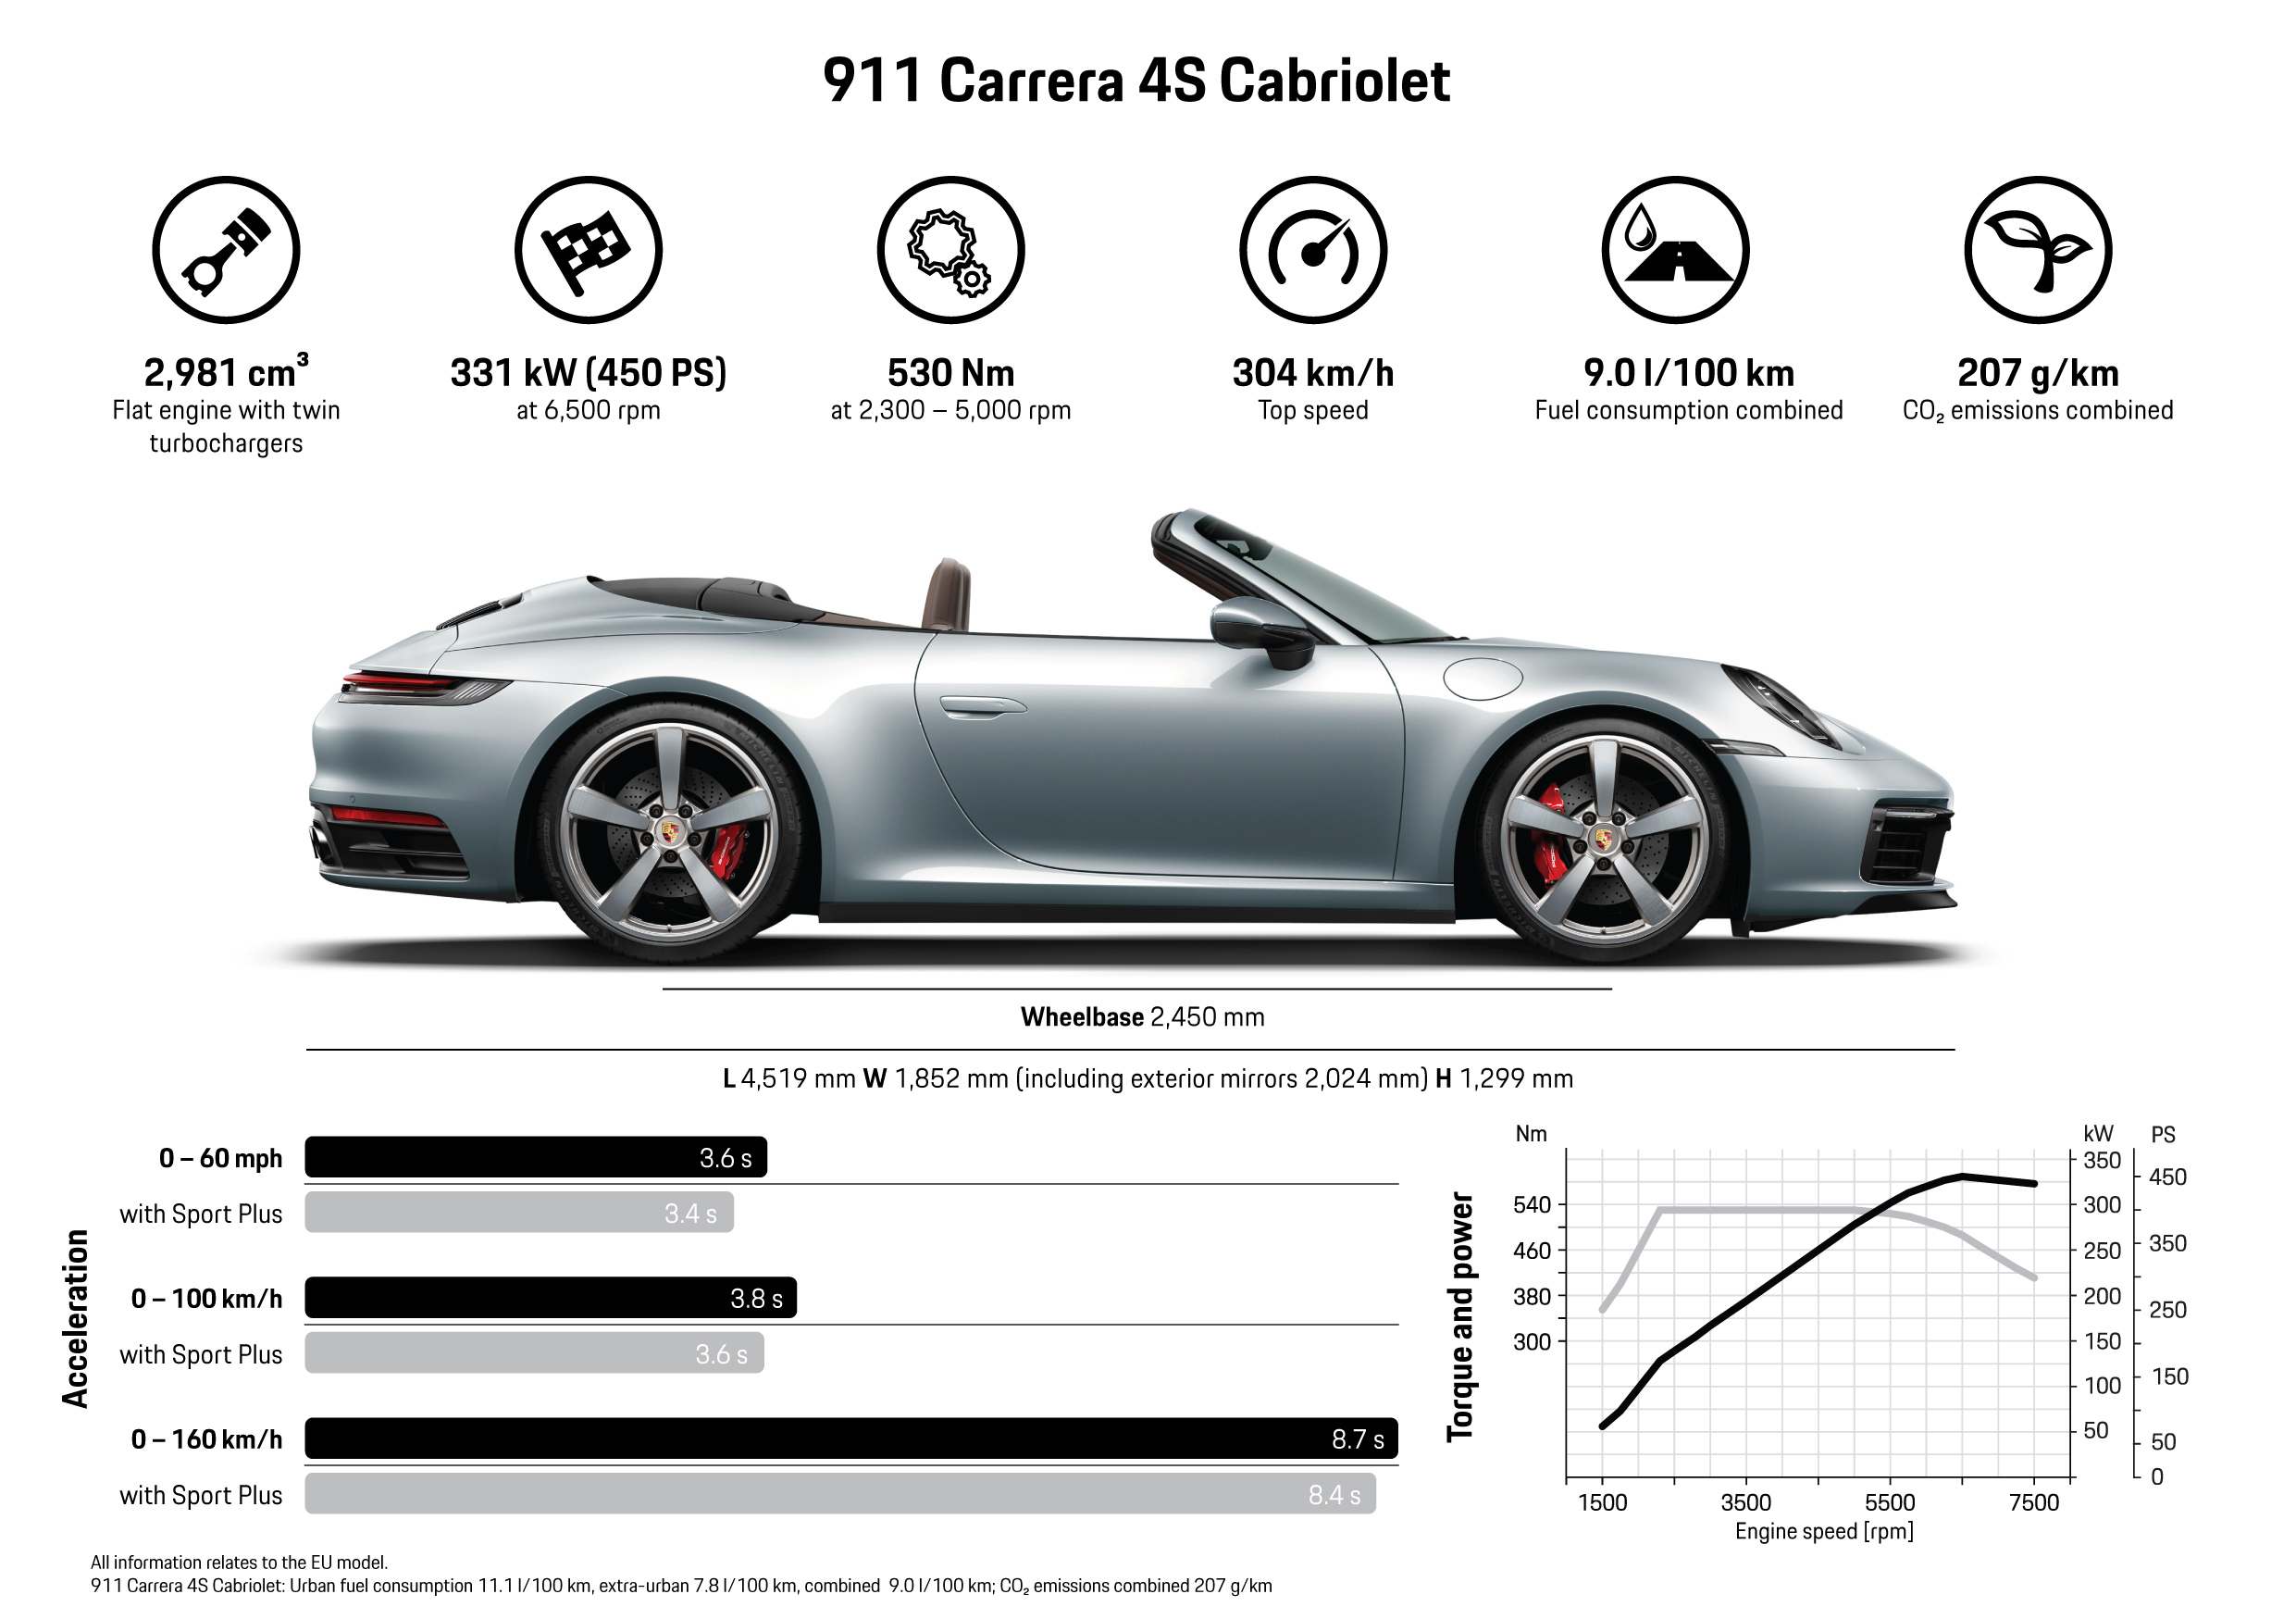 All Set For Open Top Season The New 911 Cabriolet